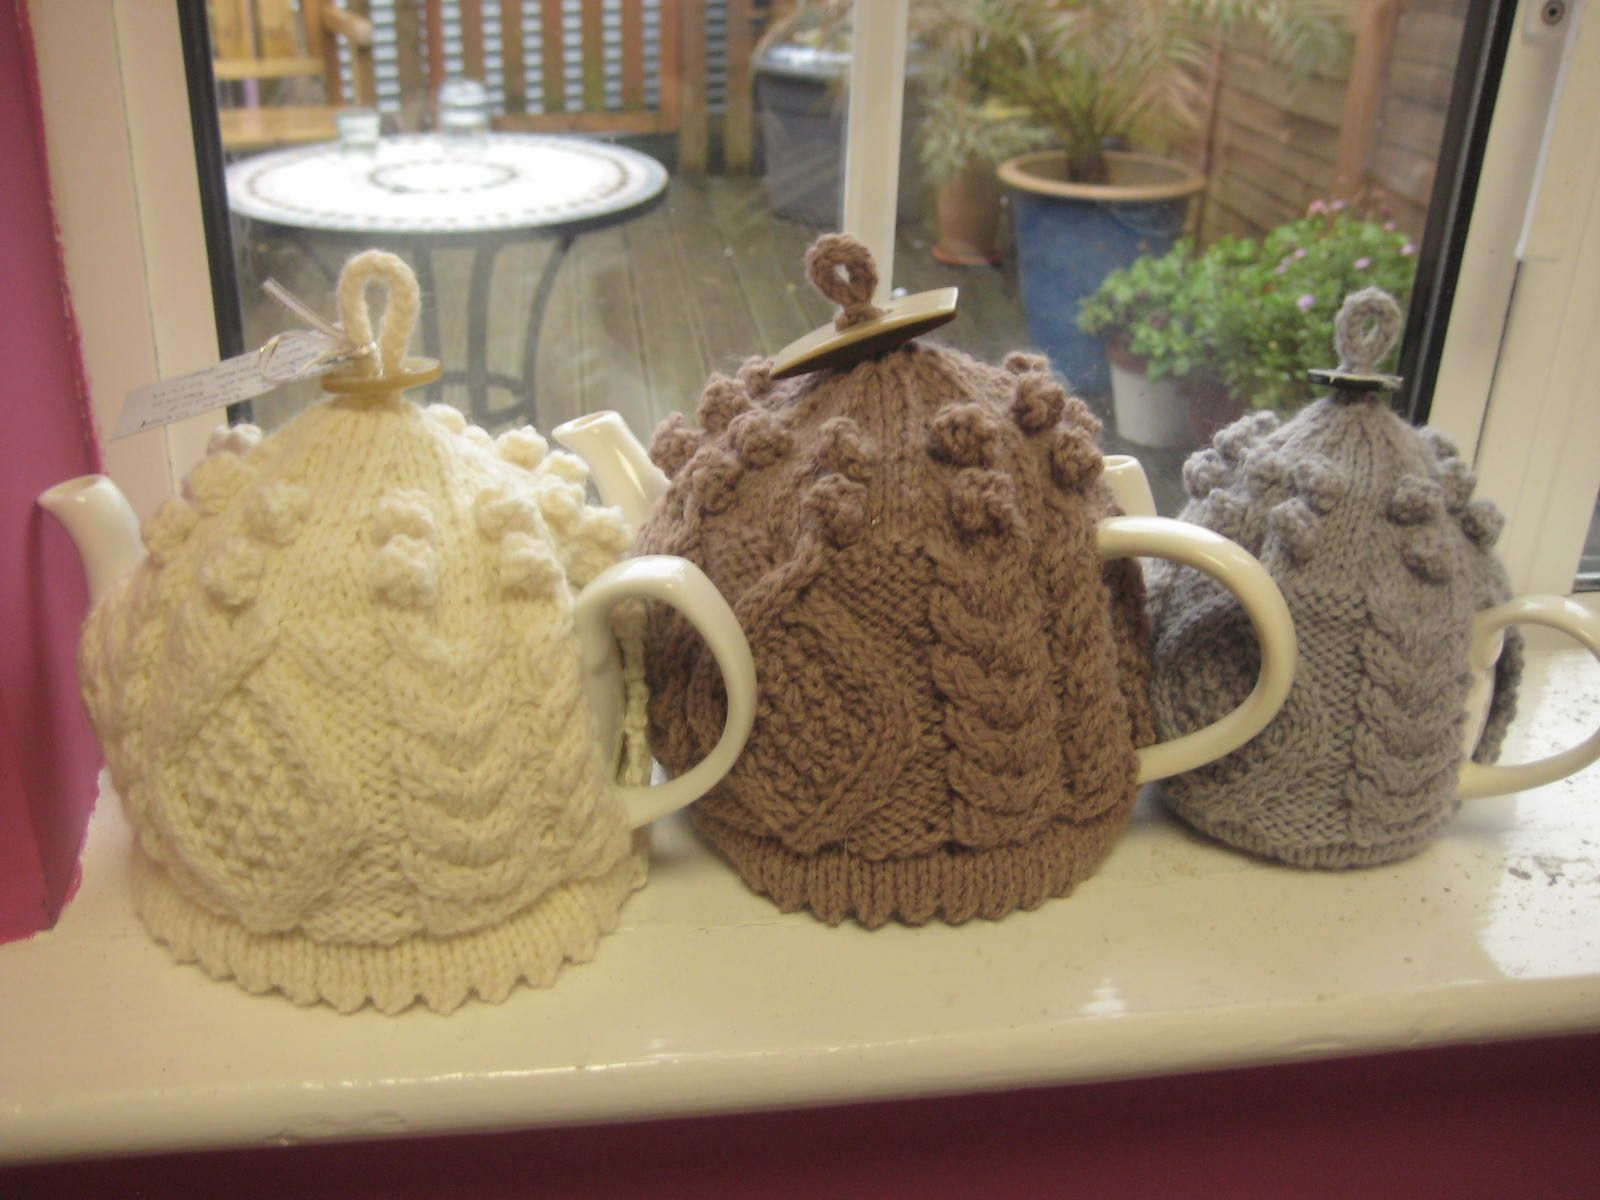 Tea cosyss please teacosies pinterest tea cozy teas ravelry little and large aran tea cosy pattern by dathil designs bankloansurffo Choice Image